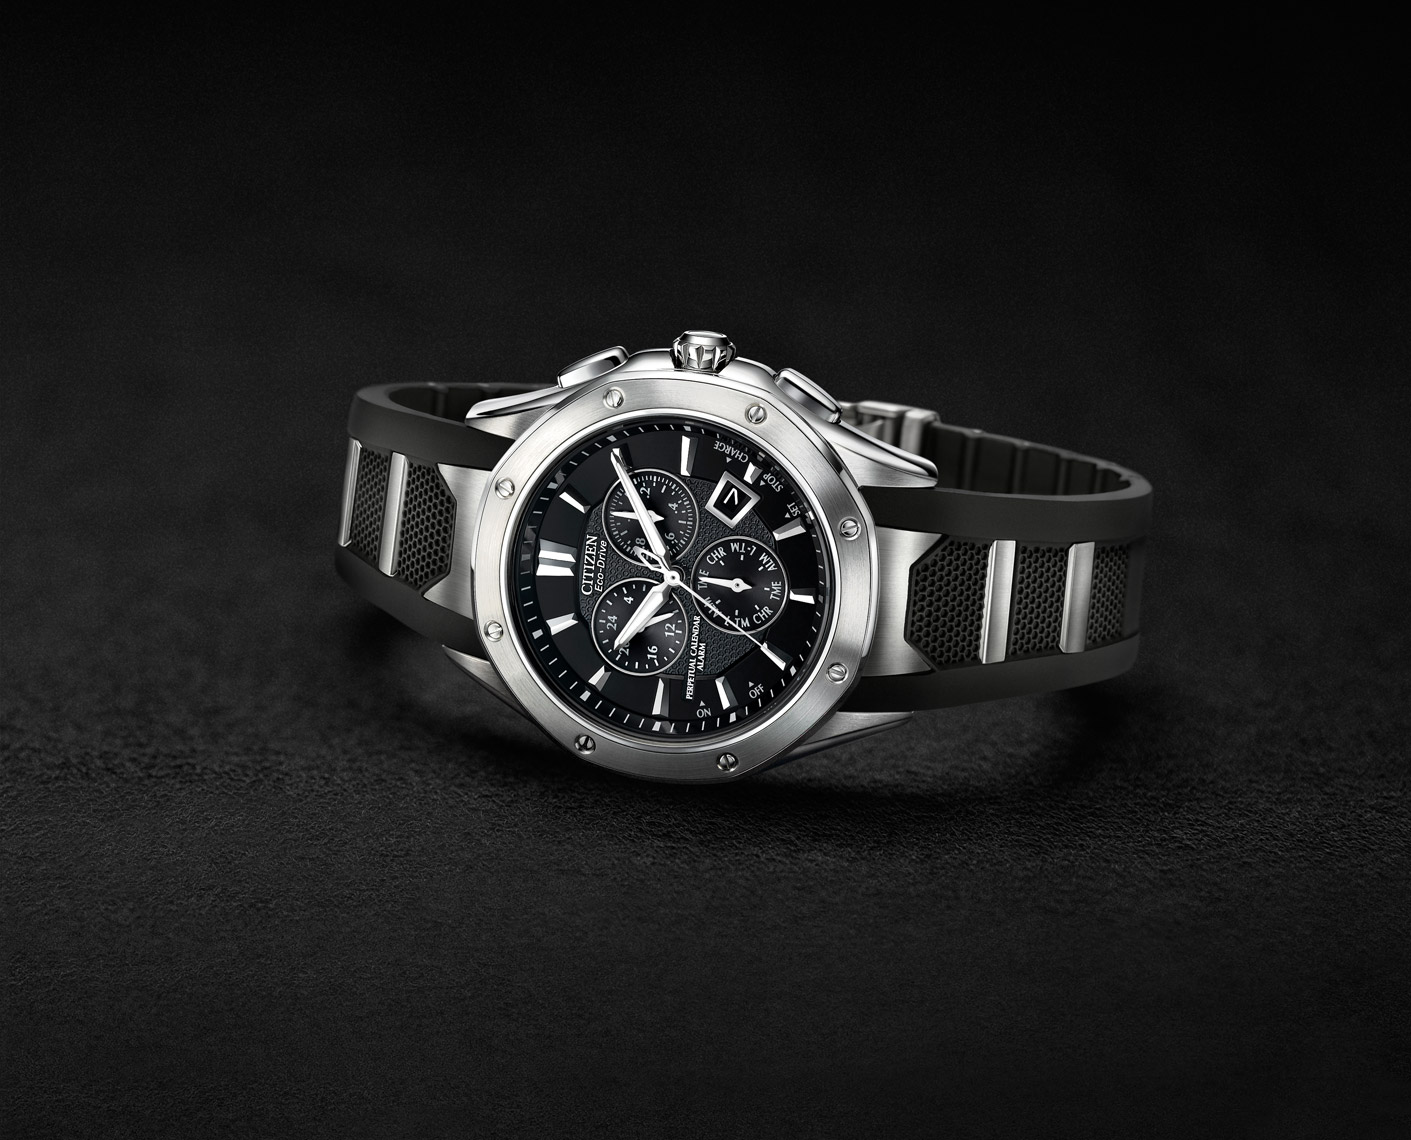 Advertising watch photography - Citizen Eco-Drive - still life photographer Kliton Ceku